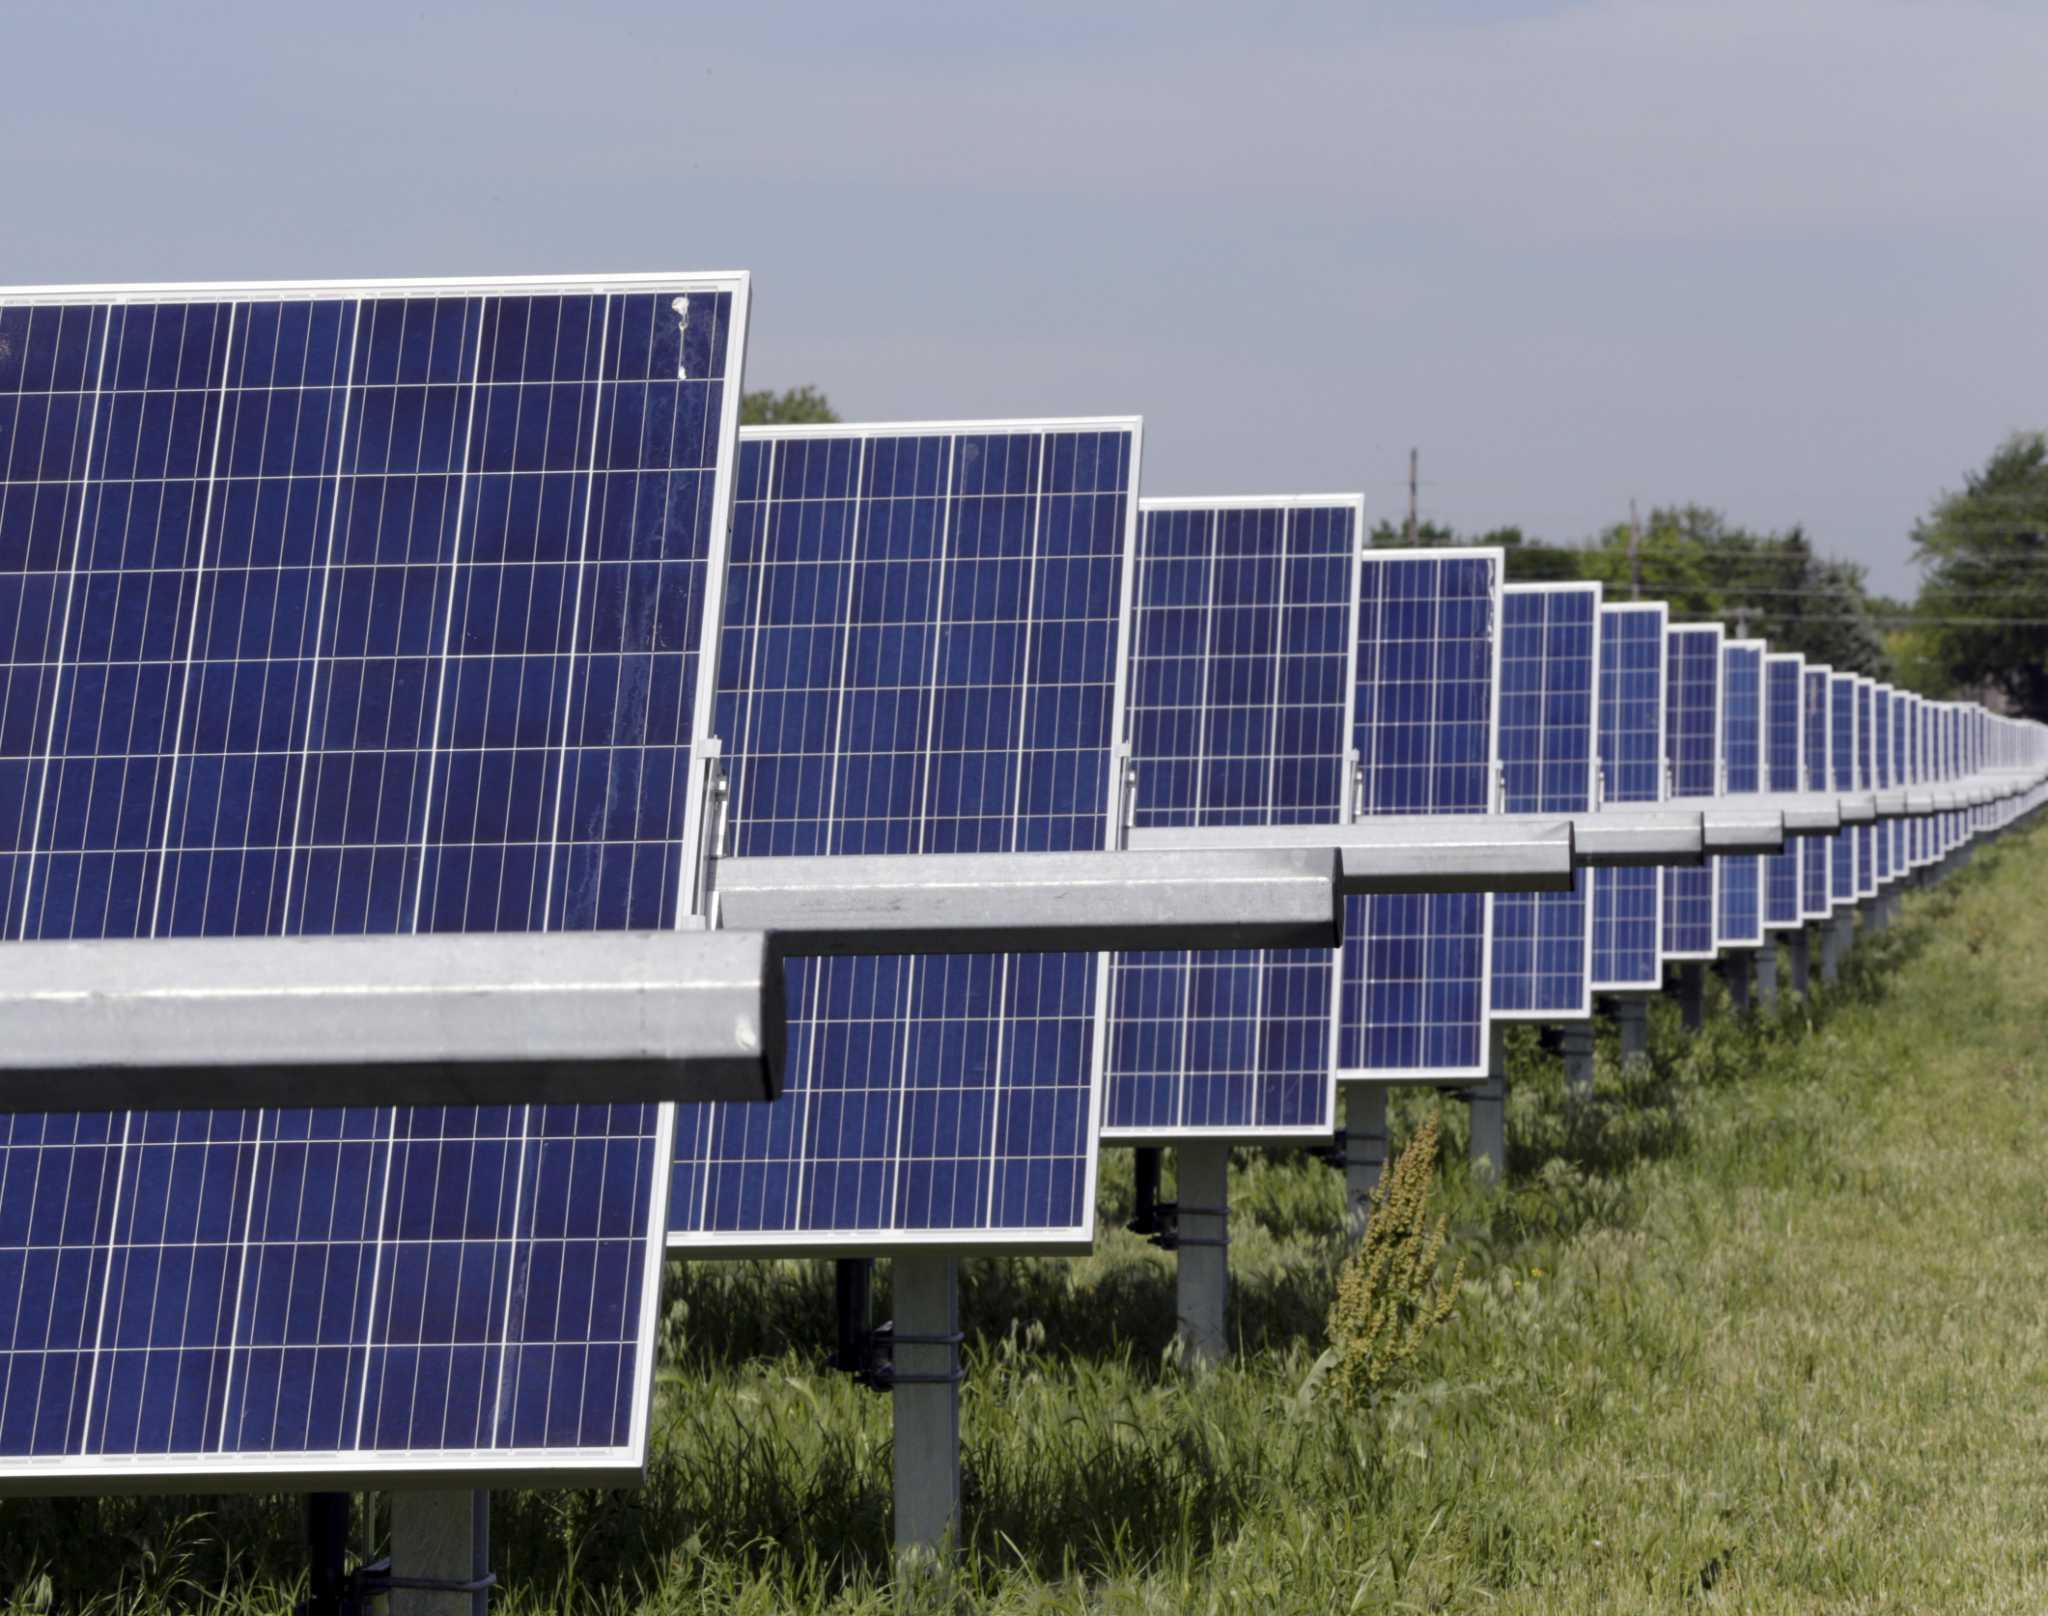 New Solar Panel Facility Scheduled For Fort Bend County Houston Cars On Pinterest Powered Car And Chronicle